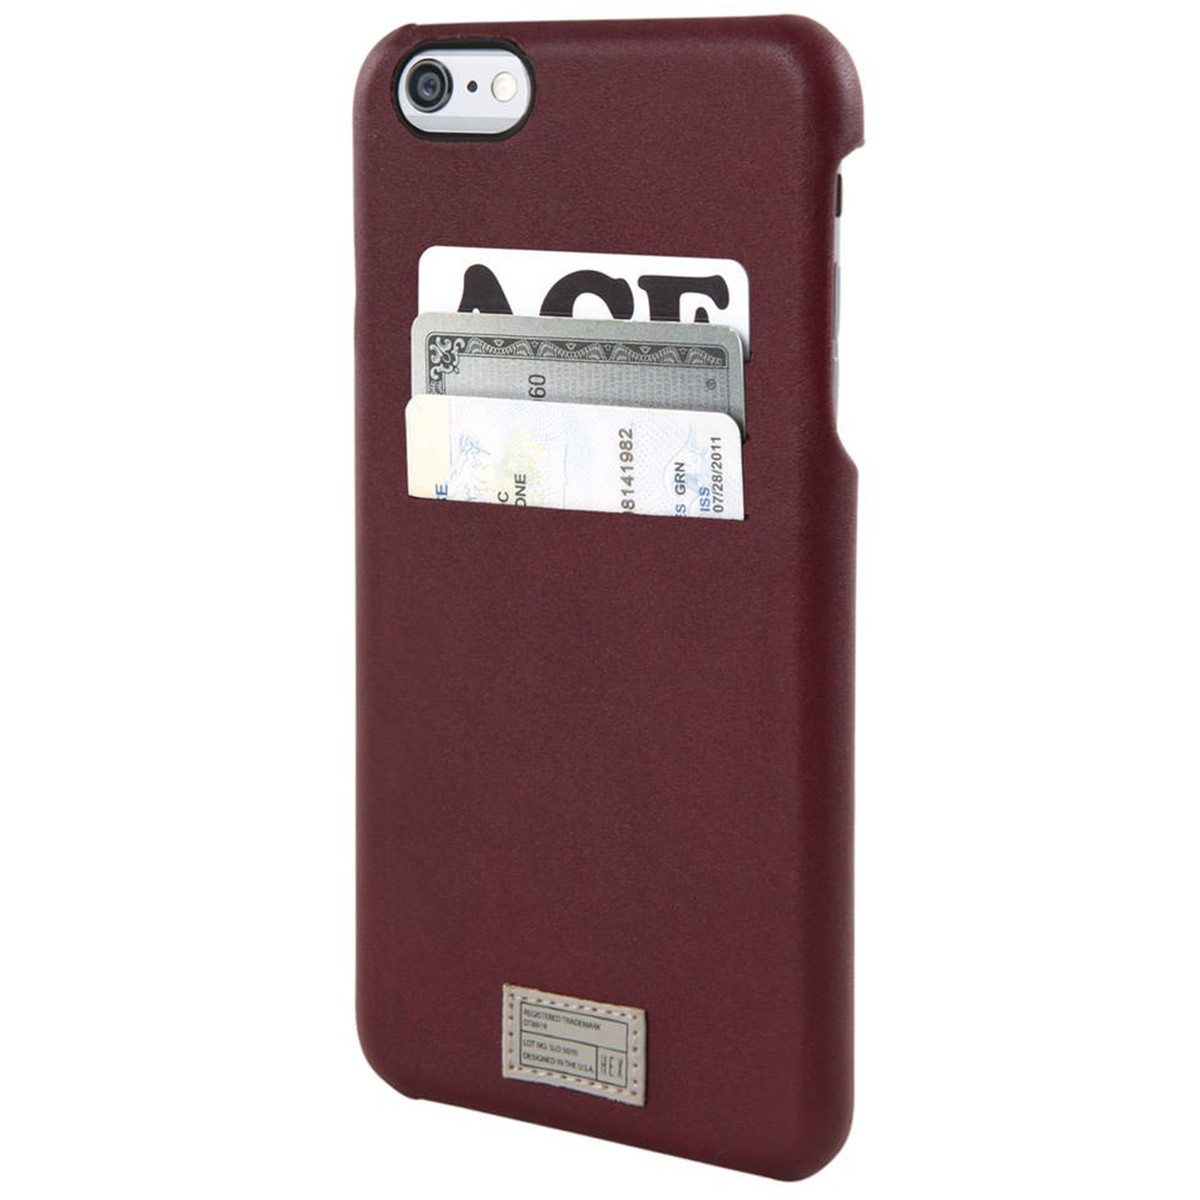 Hex iPhone 6+/6S+ Solo Wallet Phone Case - Morocan Red